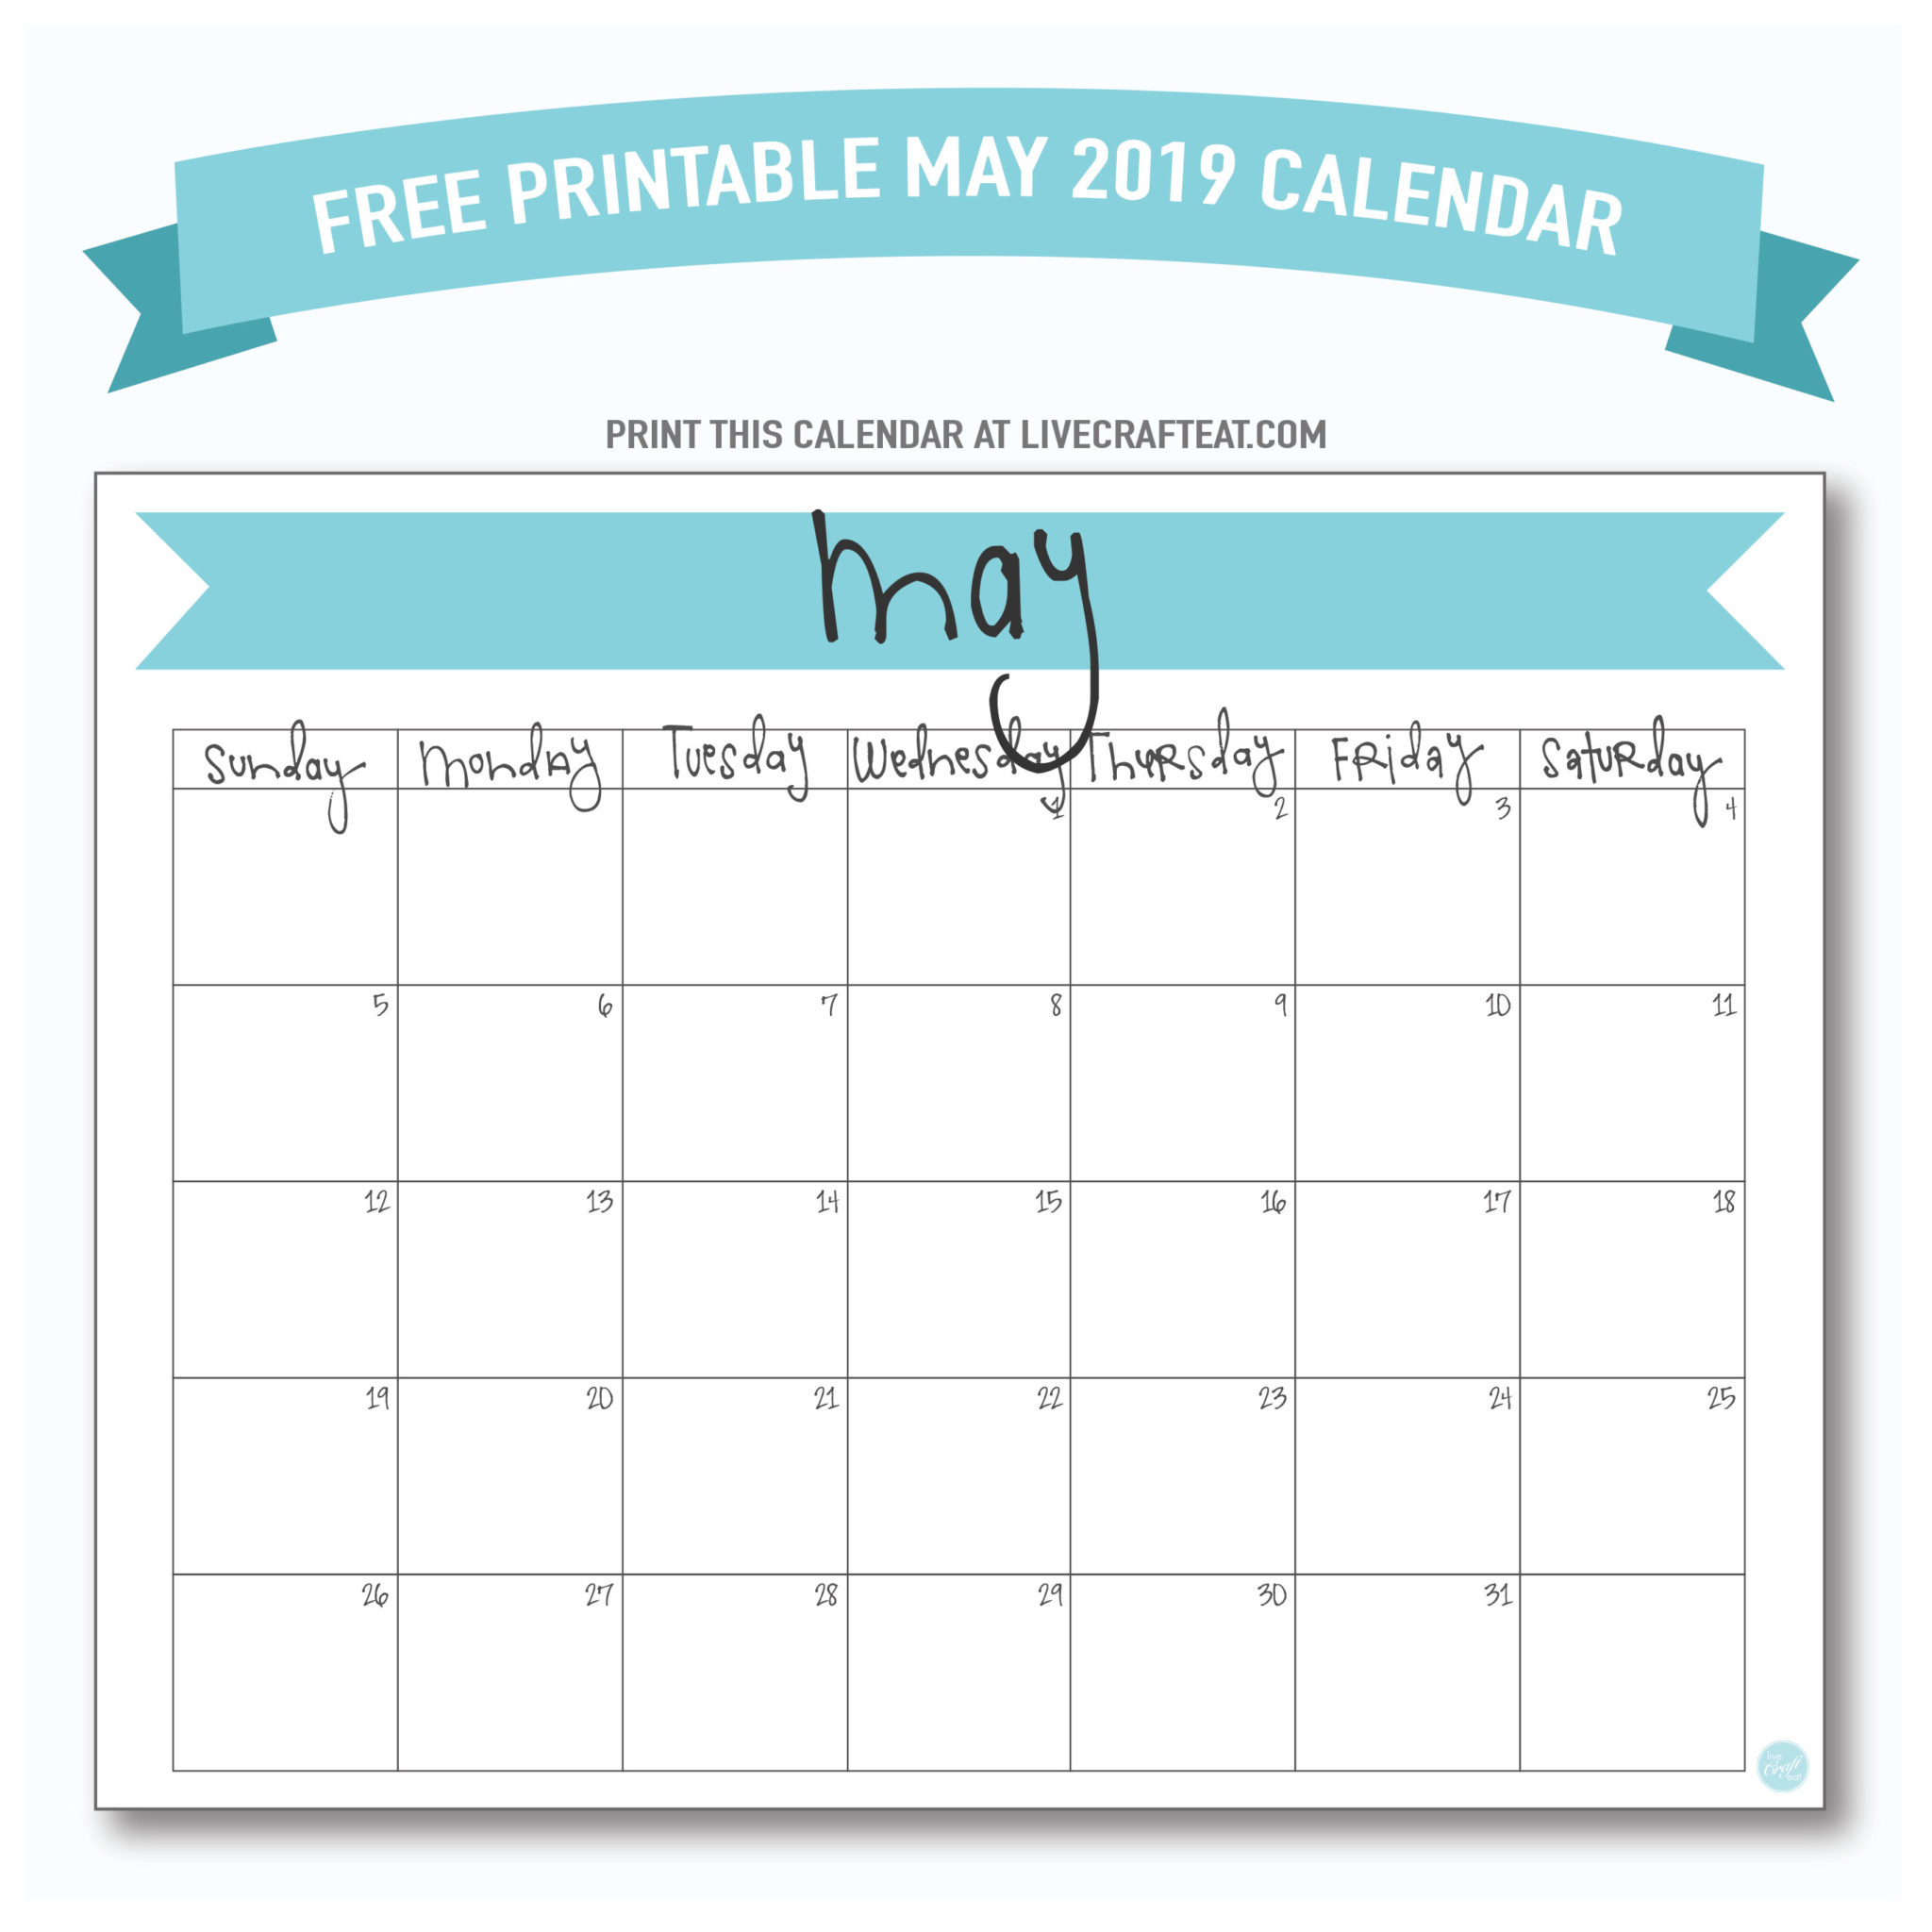 May 2019 Calendar Free Printable Live Craft Eat